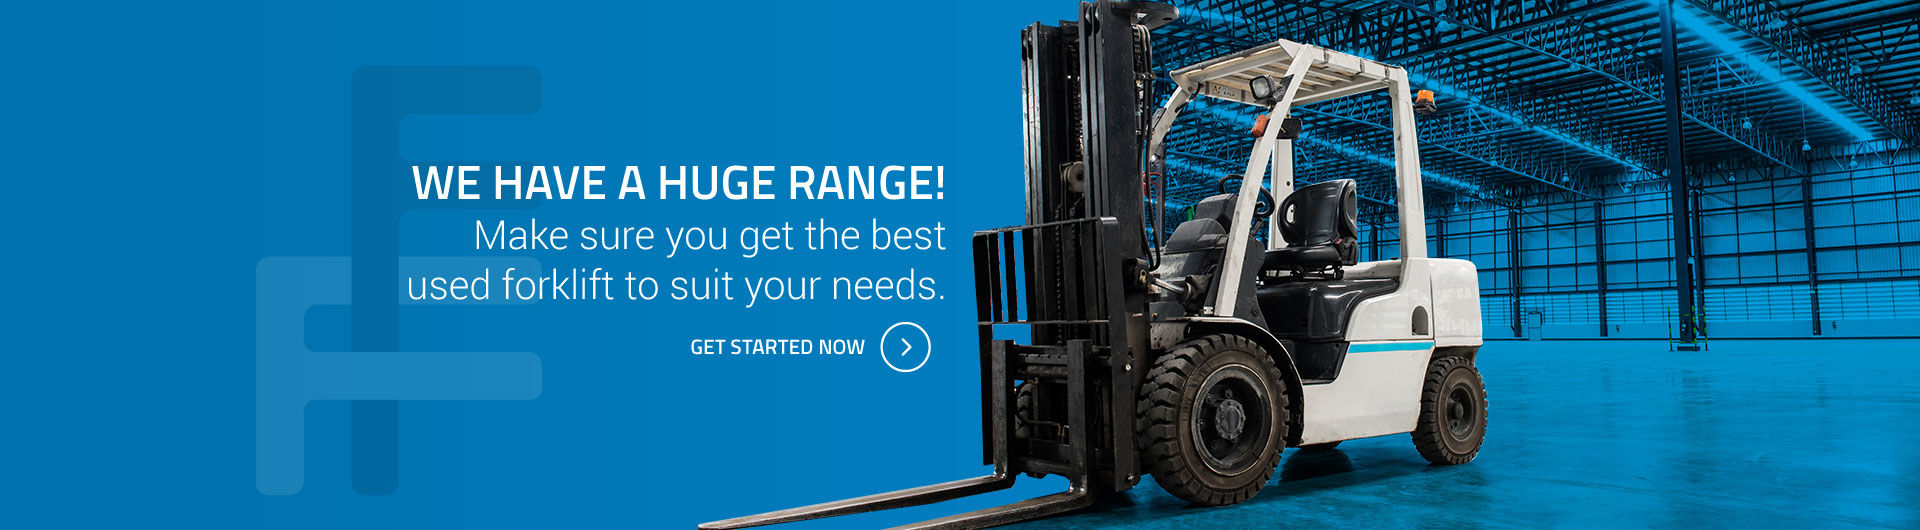 Formidable Forklifts - Huge Range of 2nd Hand Forklifts